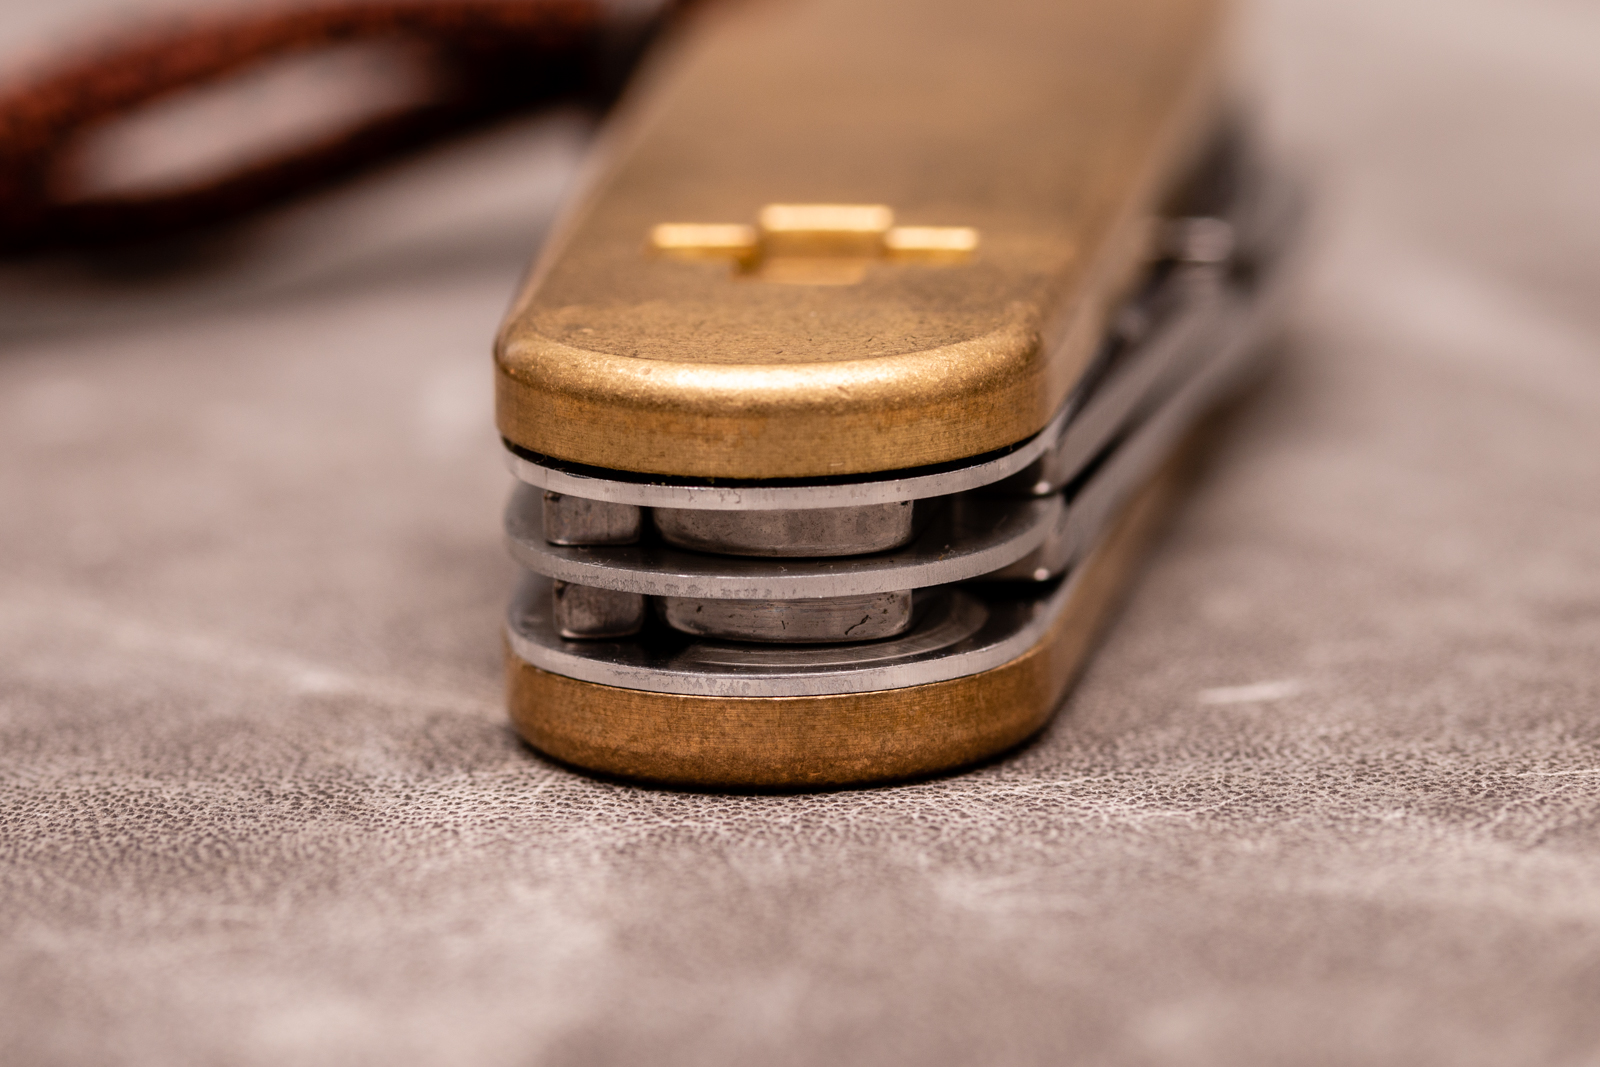 Daily Customs - Brass SAK Scales